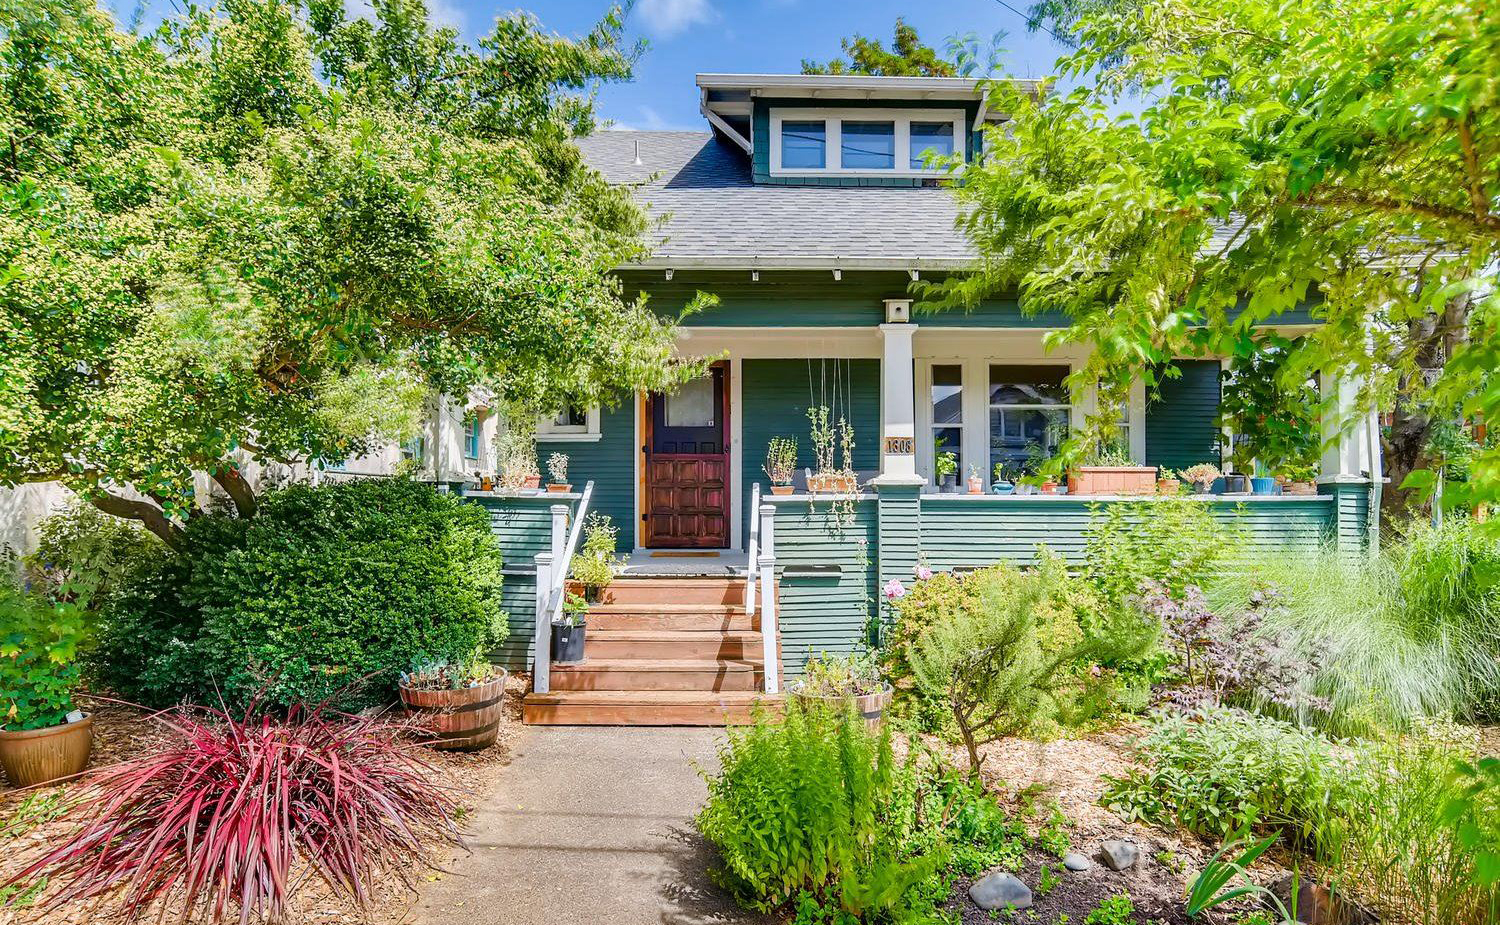 1308 SE 47th Avenue, Portland, Oregon